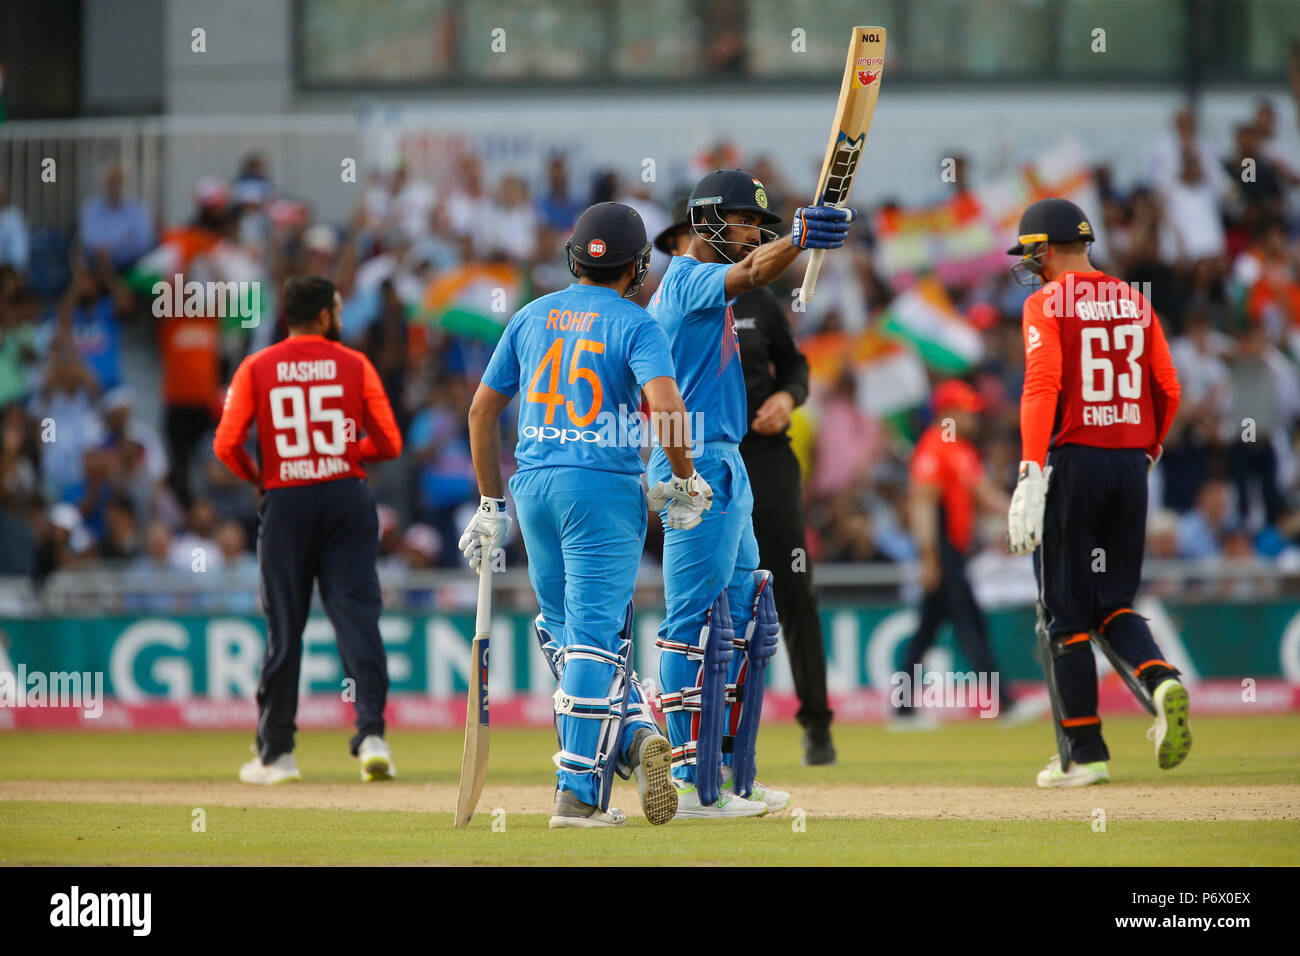 Emirates Old Trafford, Manchester, UK. 3rd July, 2018. International Twenty20 cricket, England versus India; KL Rahul of India acknowledges the crowd's applause as he reaches his half century Credit: Action Plus Sports/Alamy Live News - Stock Image